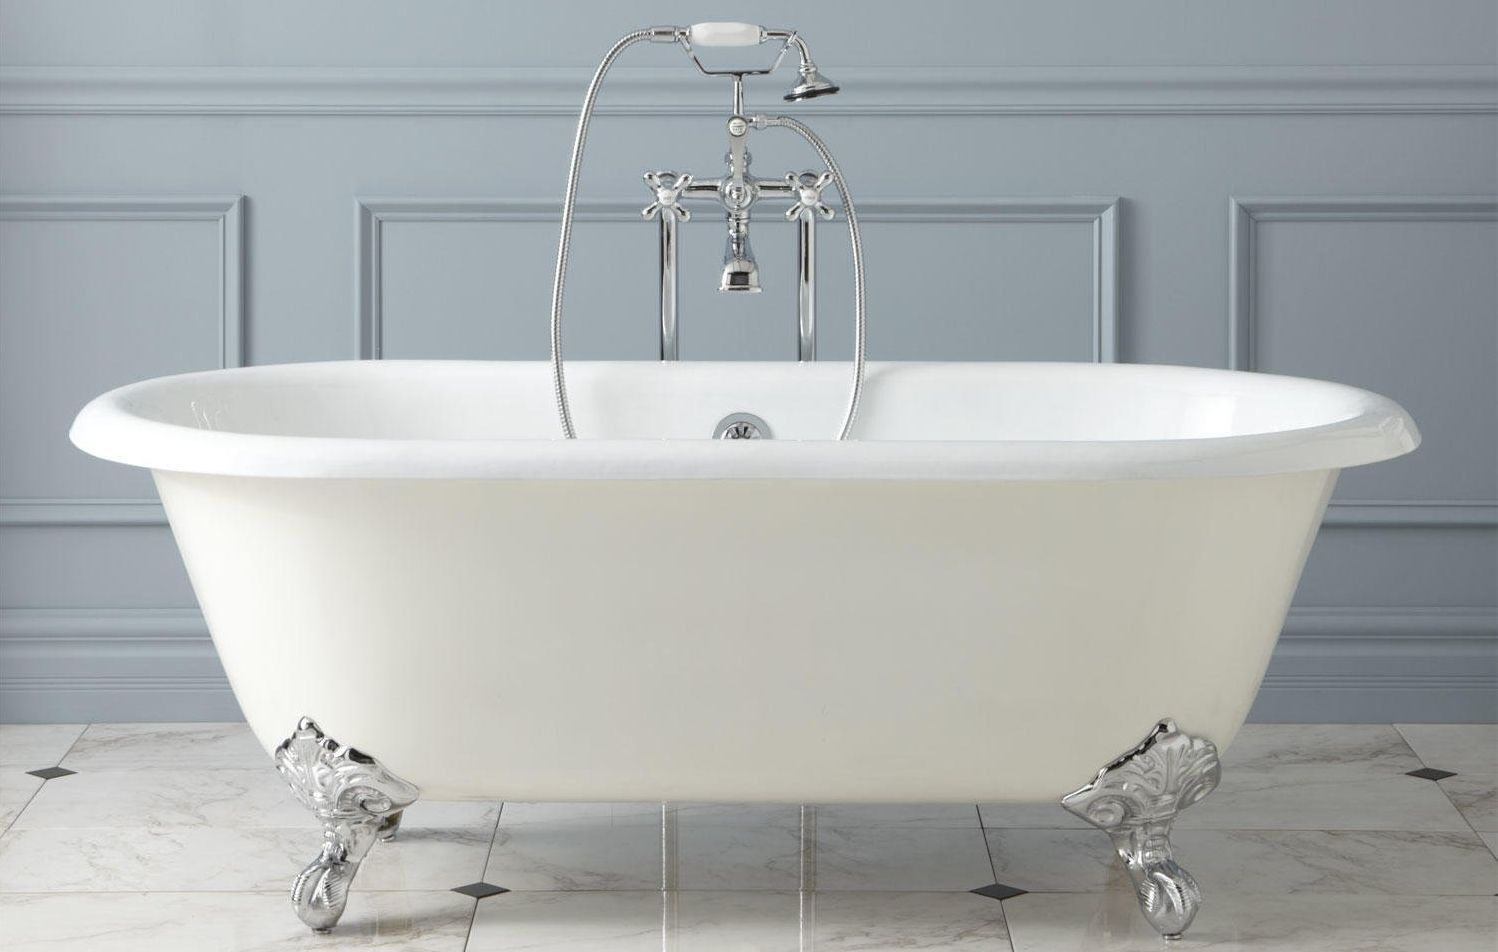 3 Tips If Your Bath Tub Is Blocked John The Plumber